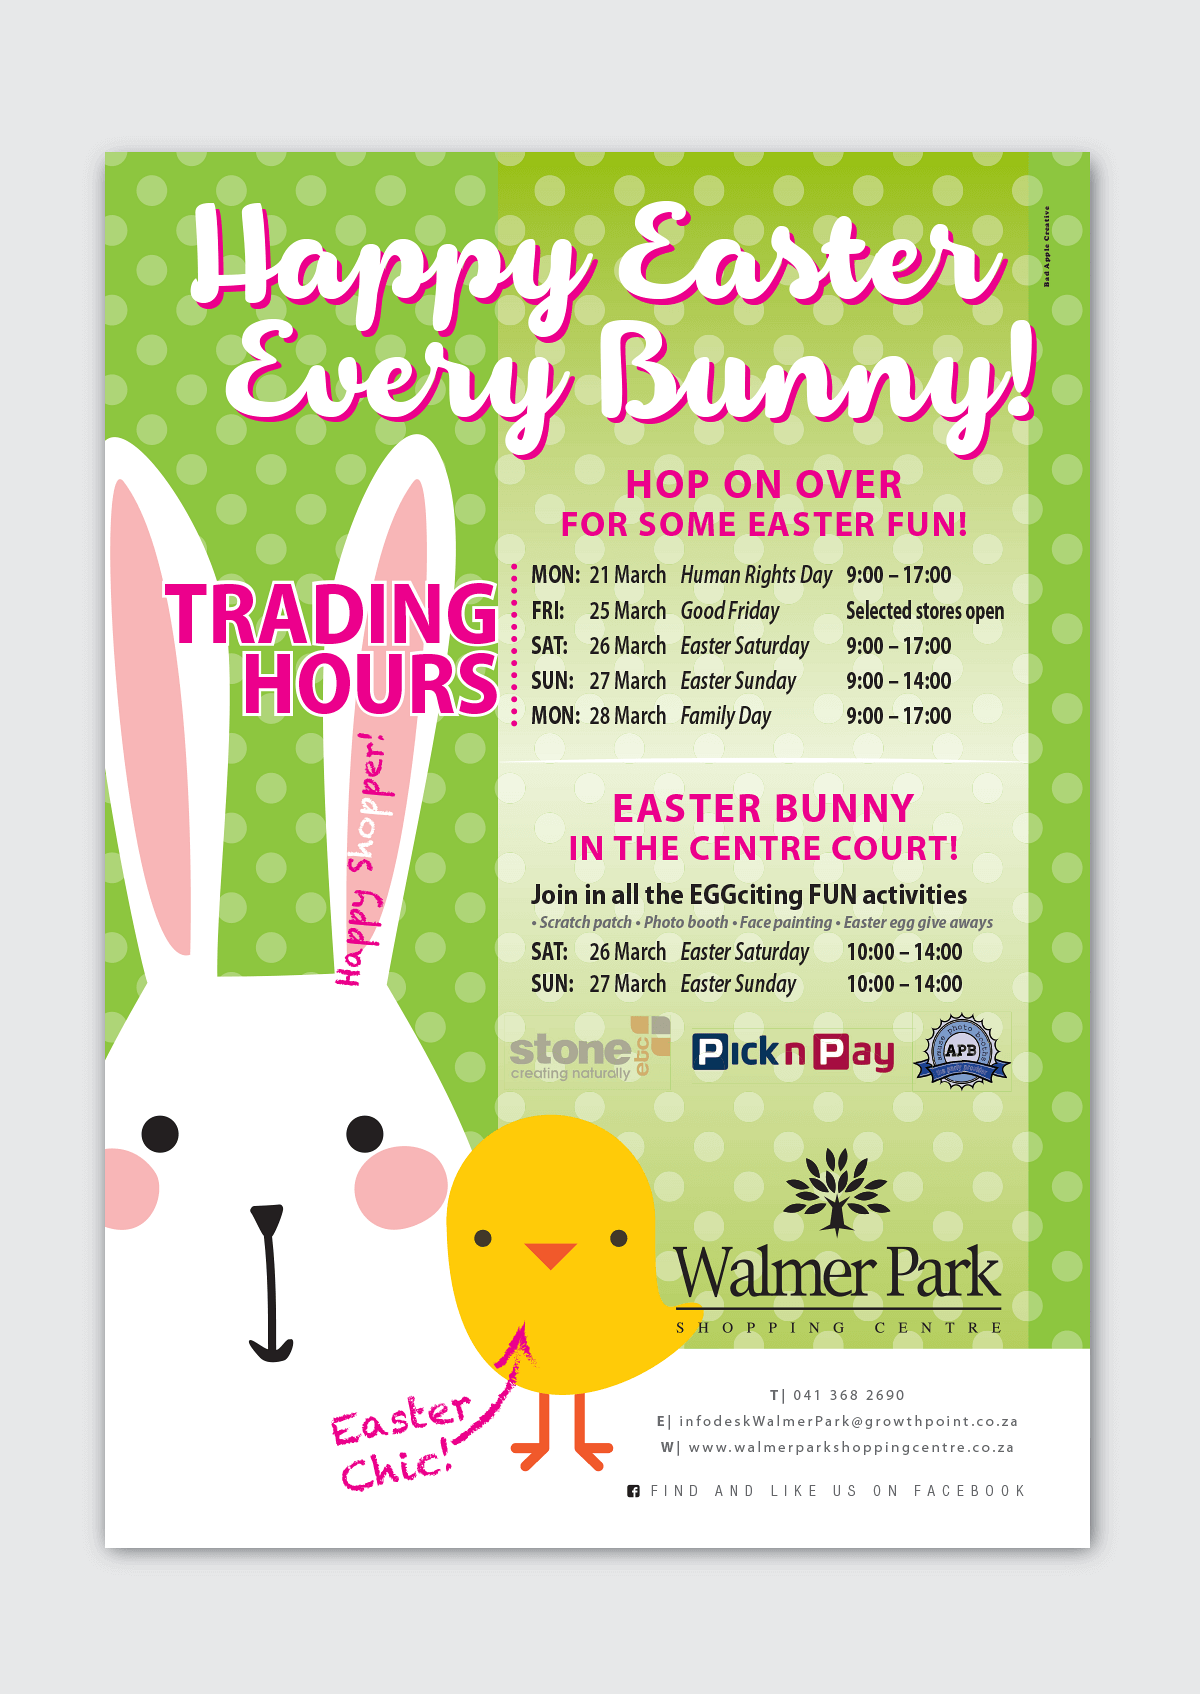 Walmer-Park-Page-Icon-Easter-Poster-Green-11